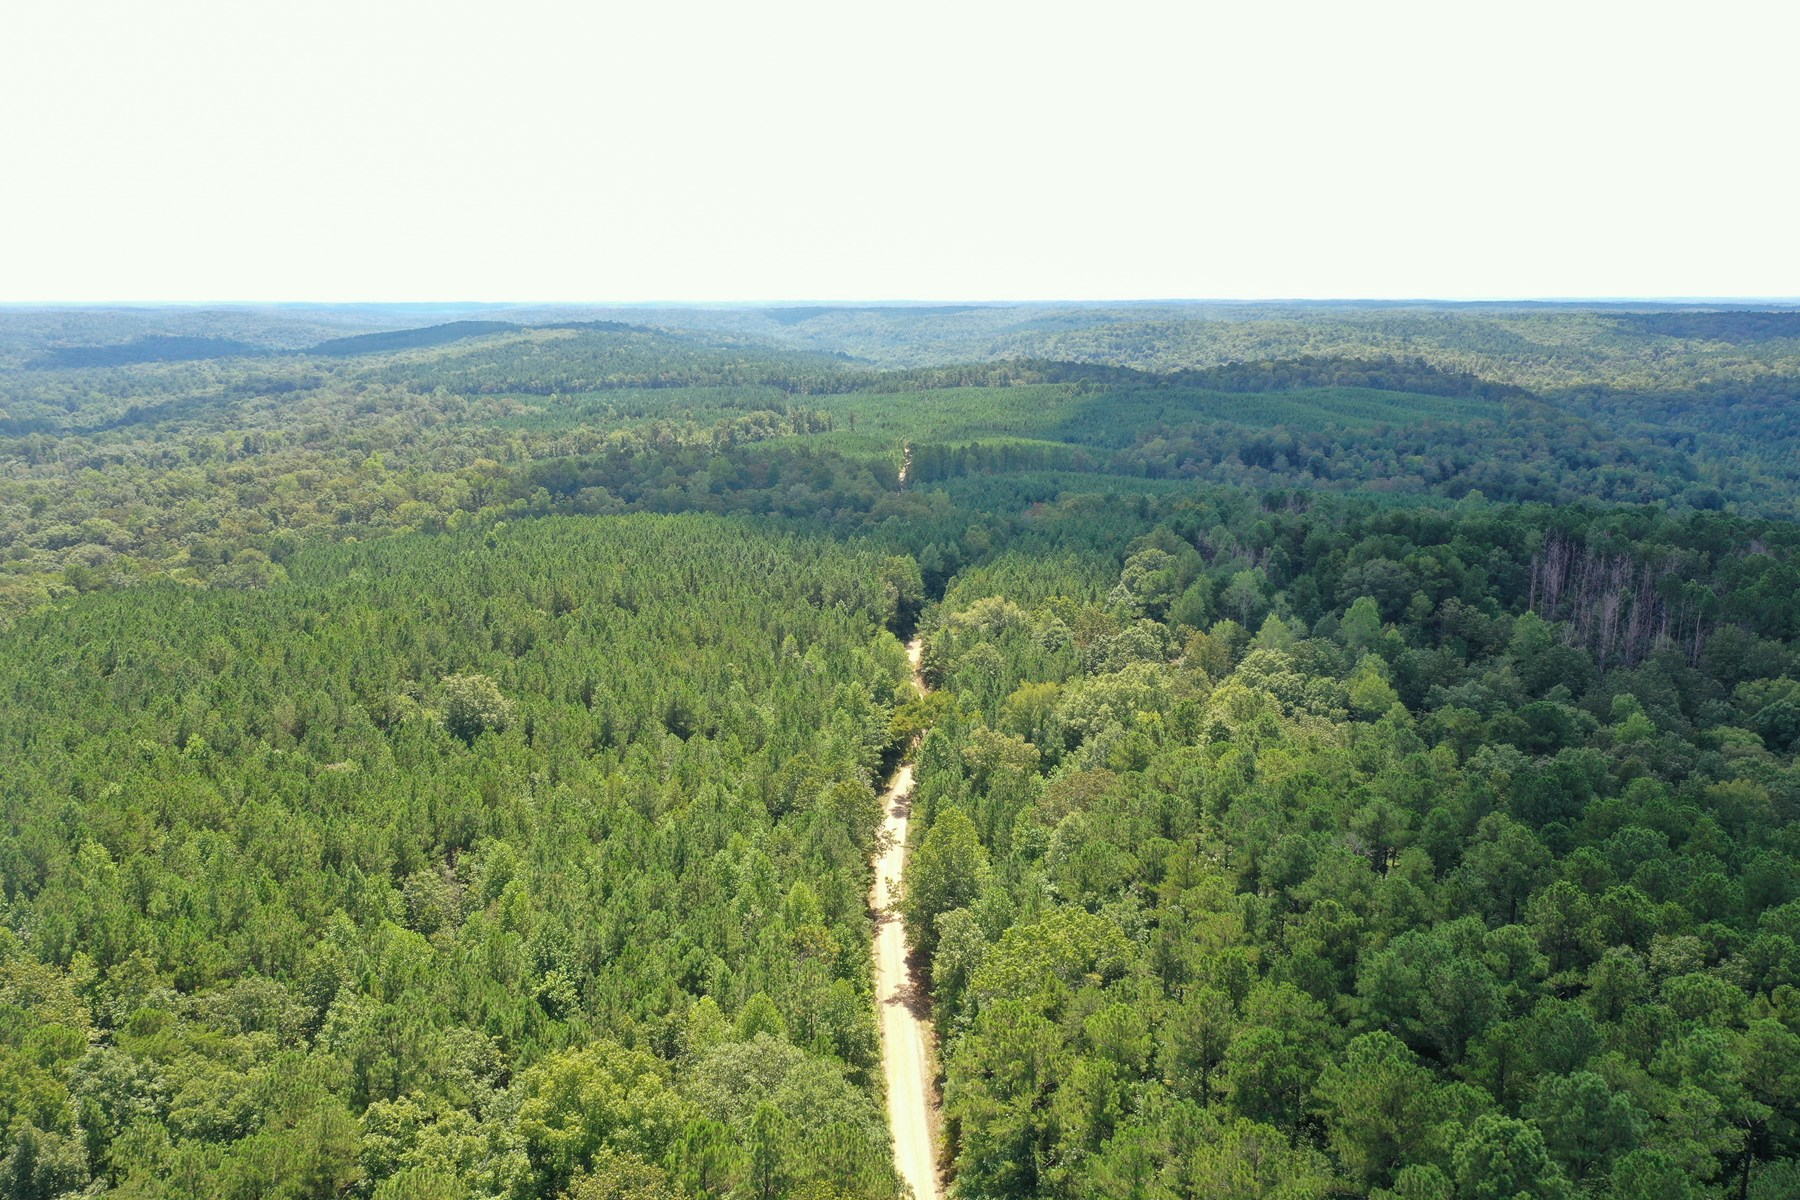 80 AC Hunting/Timberland Tract - Bankhead Forest Lawrence Co